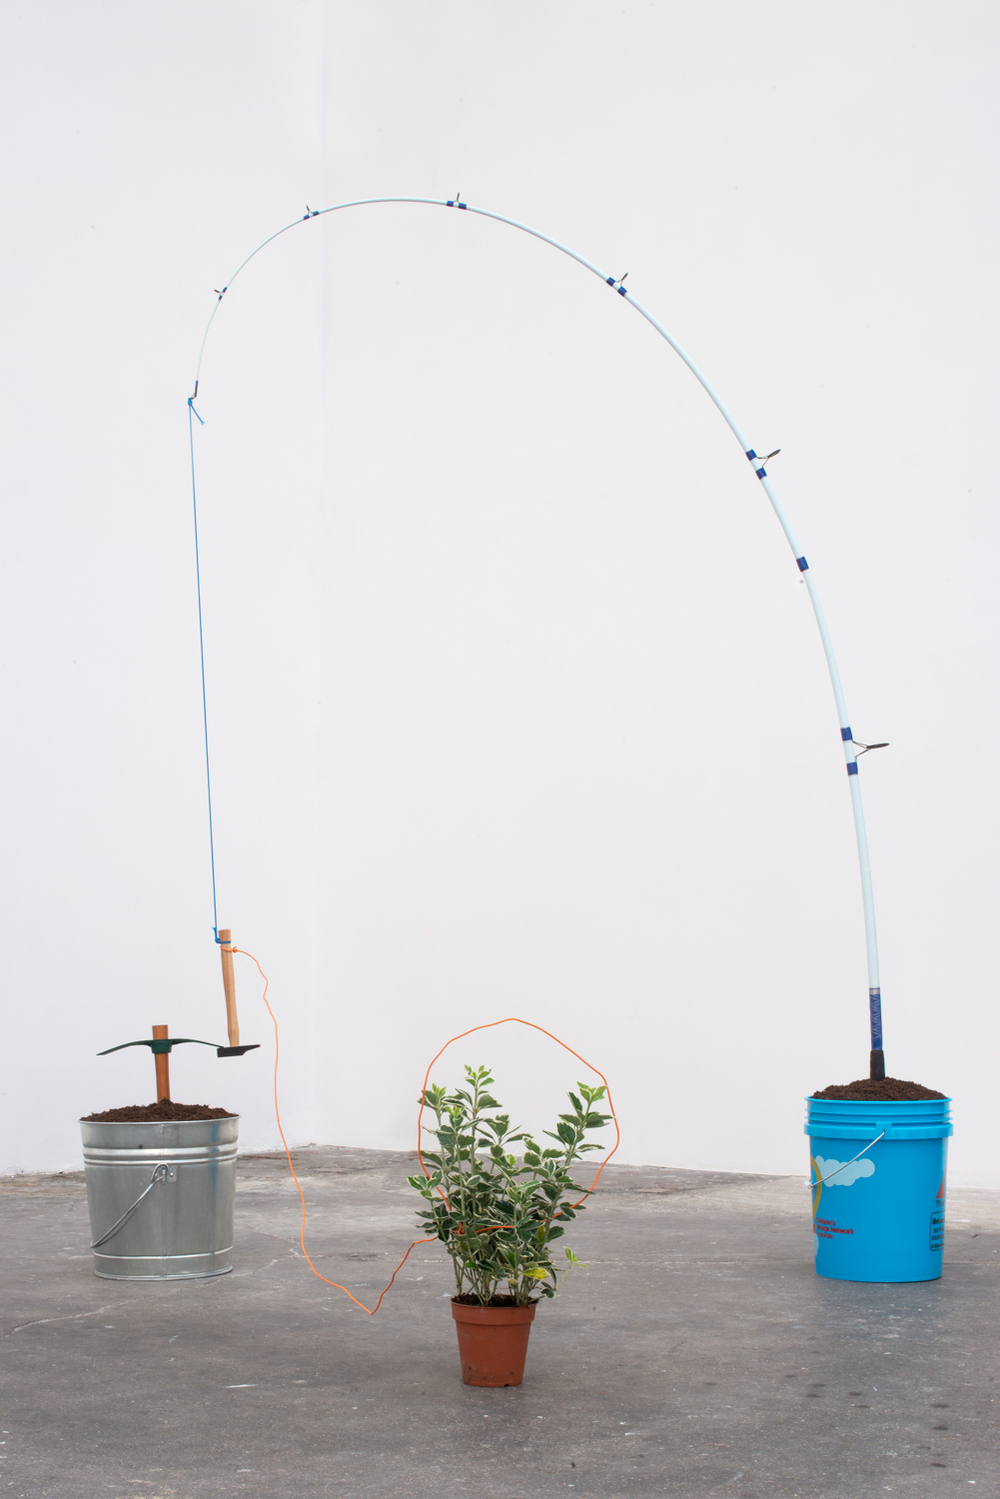 Trapaholic   ,   2014   Fishing pole, garden hoe, hammer, plant, chord, dirt, plastic and steel   Dimensions variable